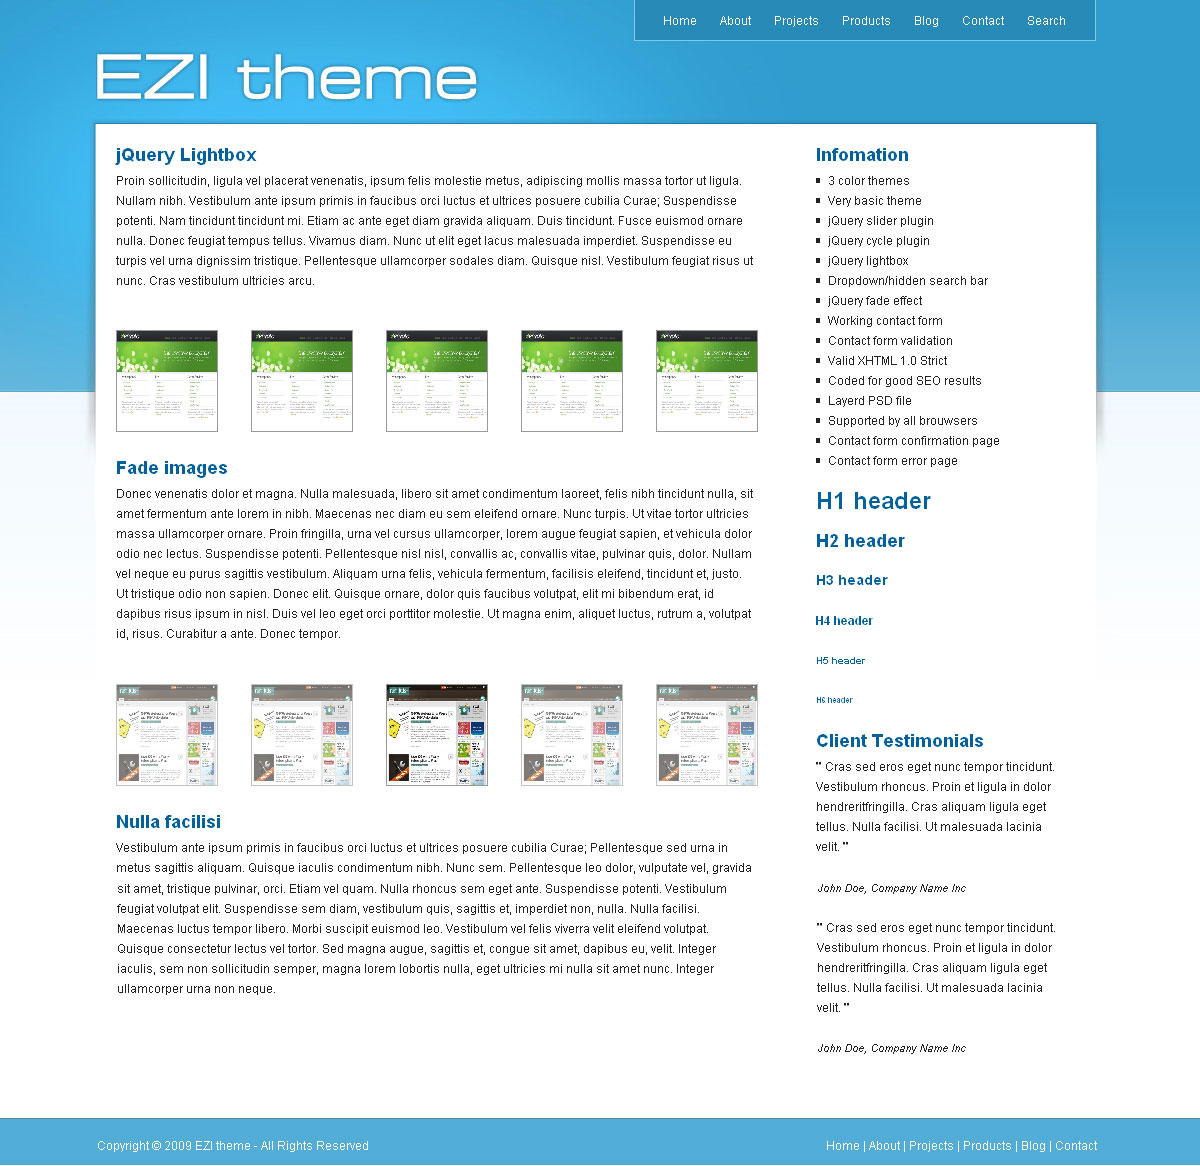 EZI theme -  EZI theme       * 3 color themes     * jQuery slider plugin     * jQuery cycle plugin     * jQuery lightbox     * Dropdown/hidden search bar     * jQuery fade effect     * Working contact form     * Contact form validation     * Valid XHTML 1.0 Strict     * Coded for good SEO results     * Layerd PSD file     * Supported by all brouwsers     * Contact form confirmation page     * Contact form error page